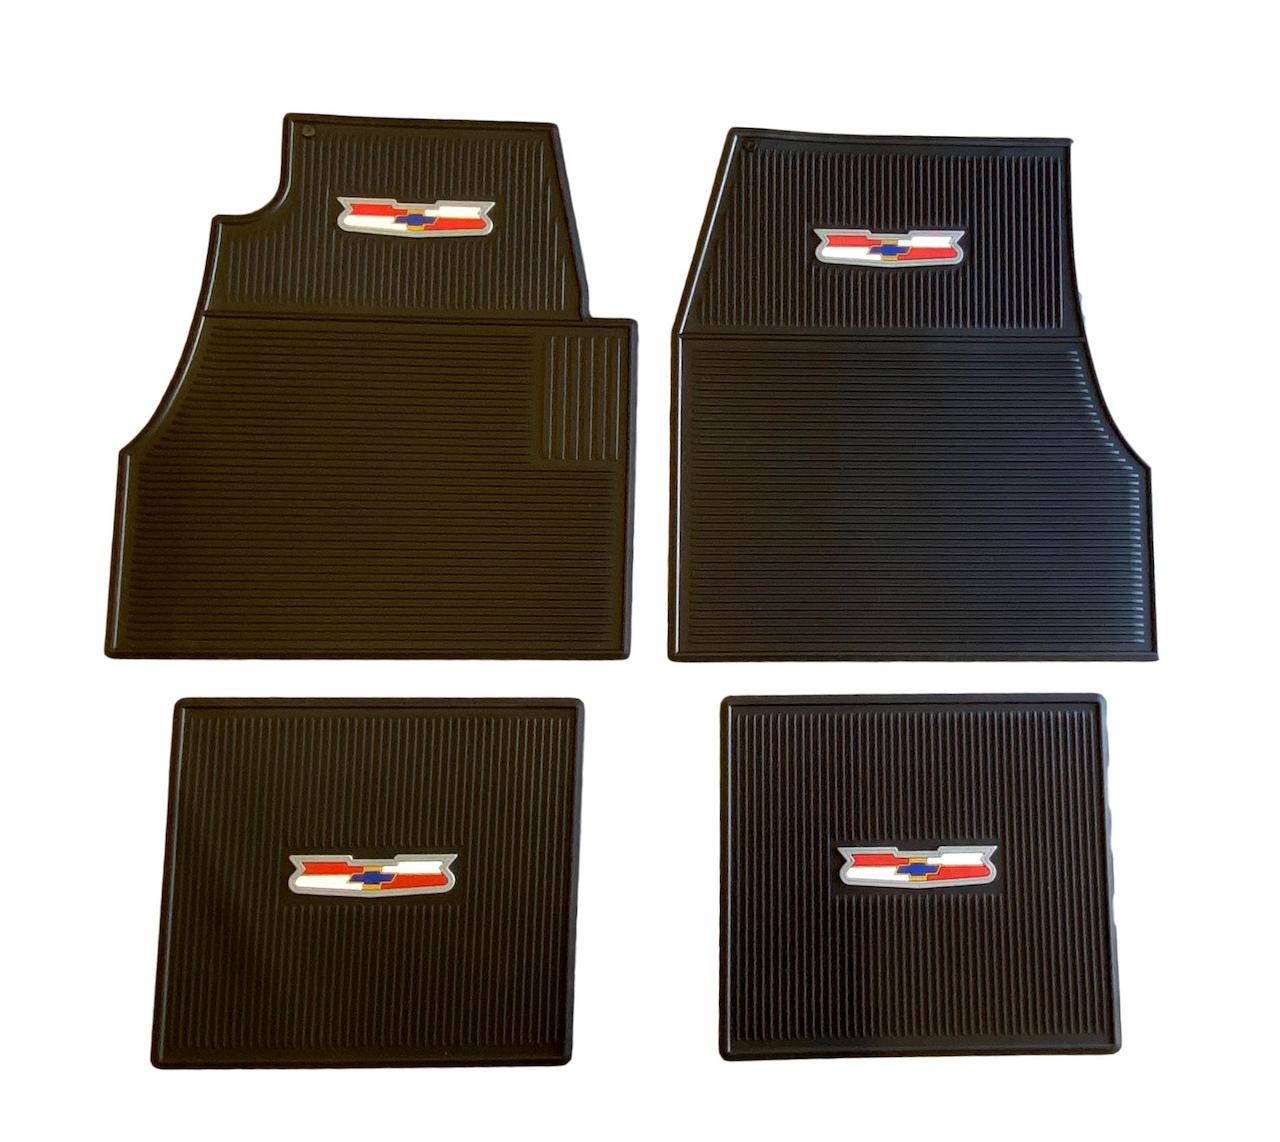 1955 1956 1957 Chevy Black Rubber Floor Mats With Crest Logo